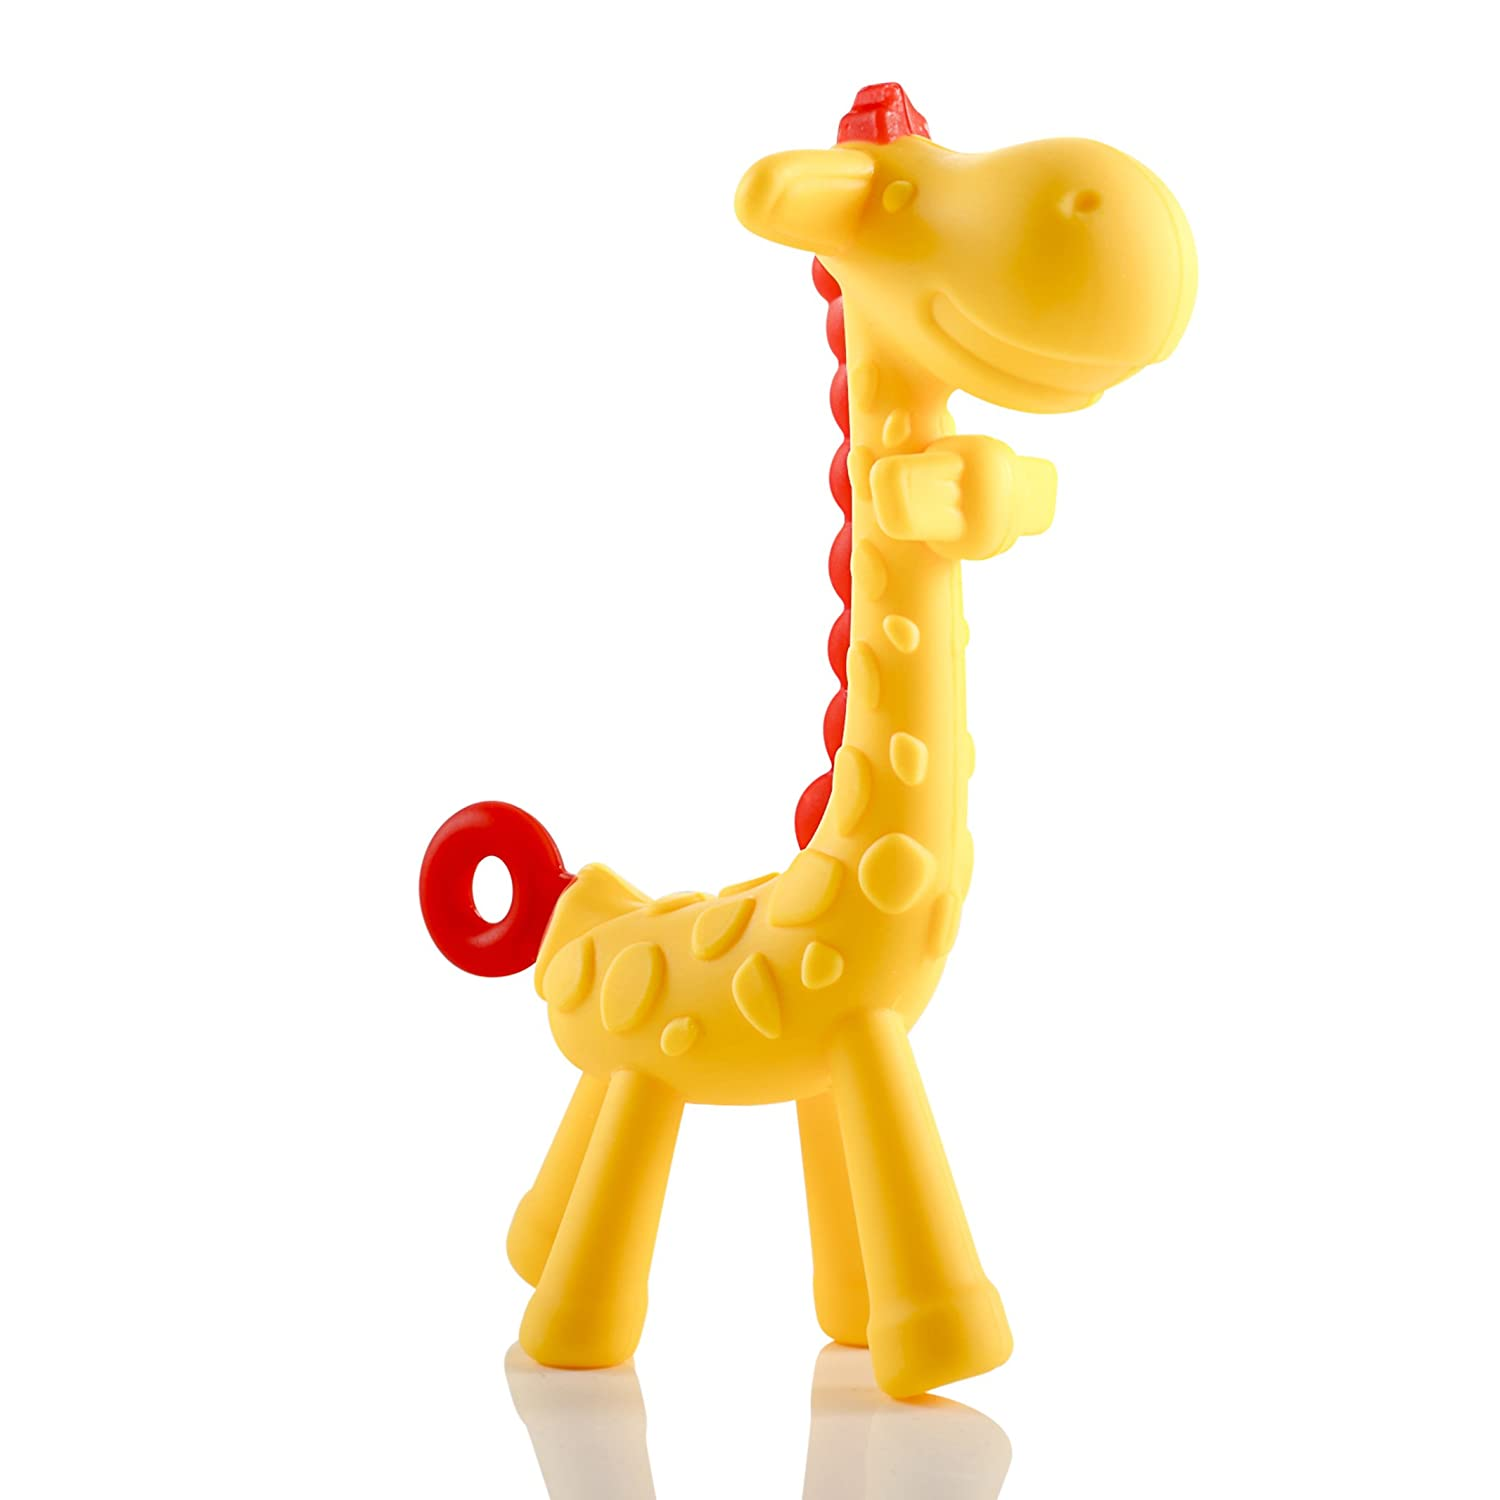 da3821539cd Giraffe Baby Teether Toy | Natural & Organic BPA-Free Silicone | Textured  Infant Teething Relief |...